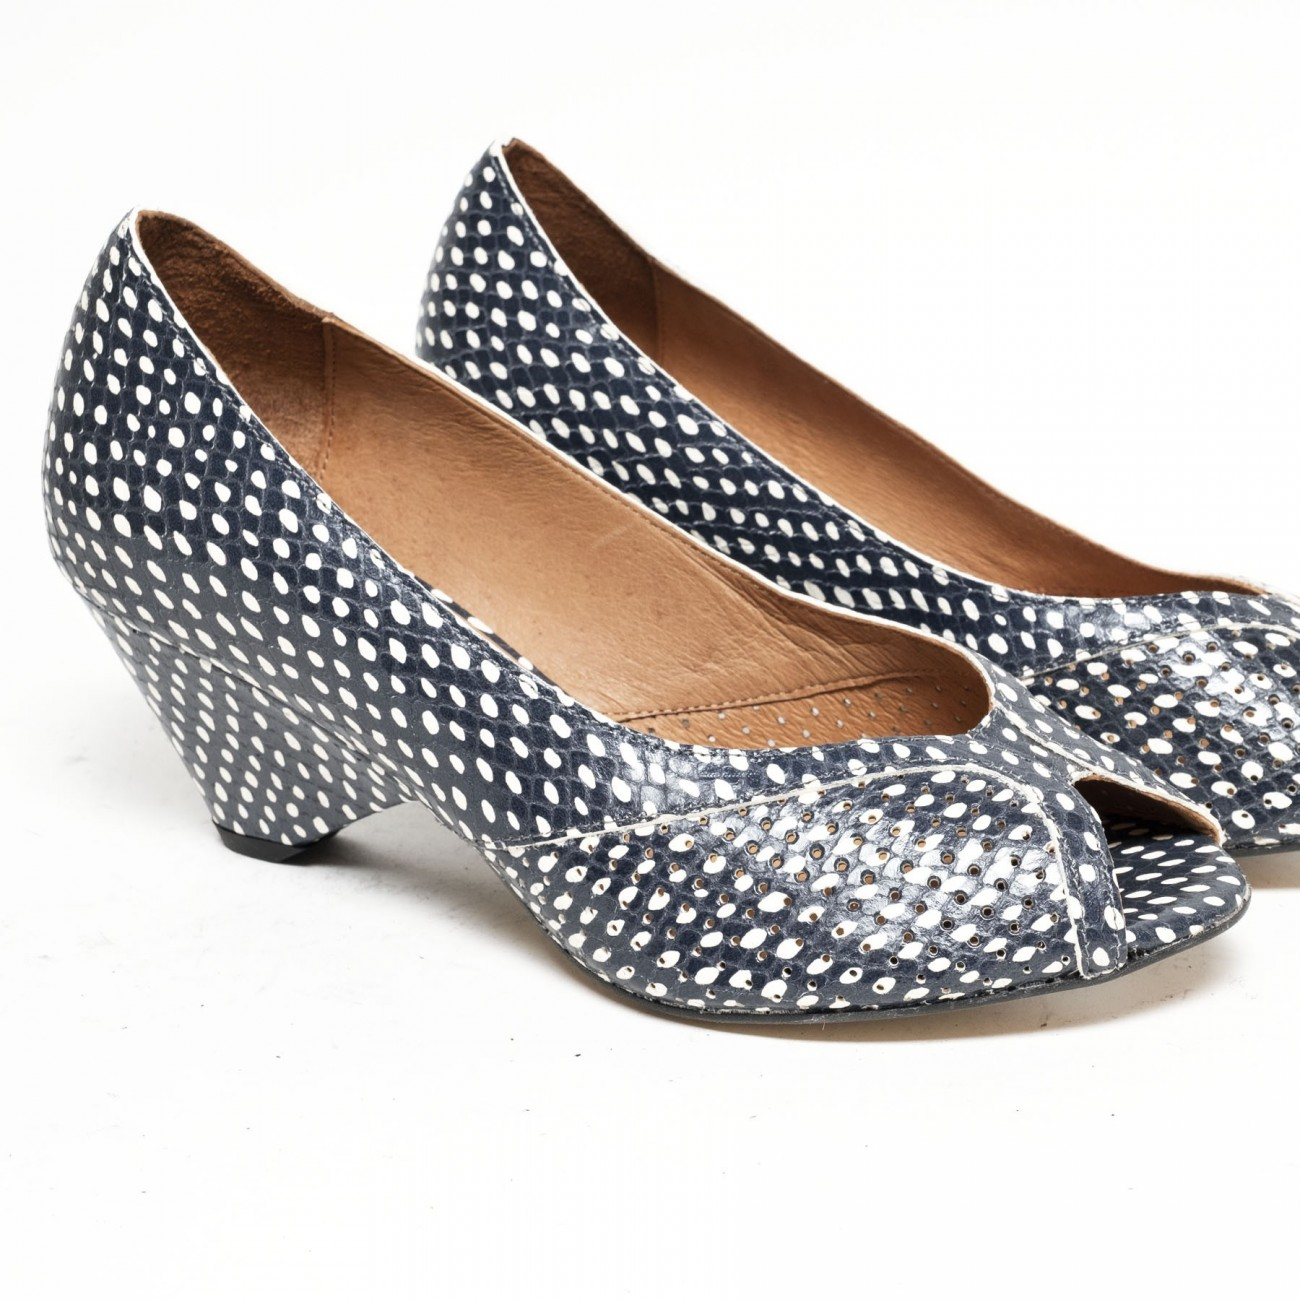 Tiffany Spotted snake calf Blue - Size 38